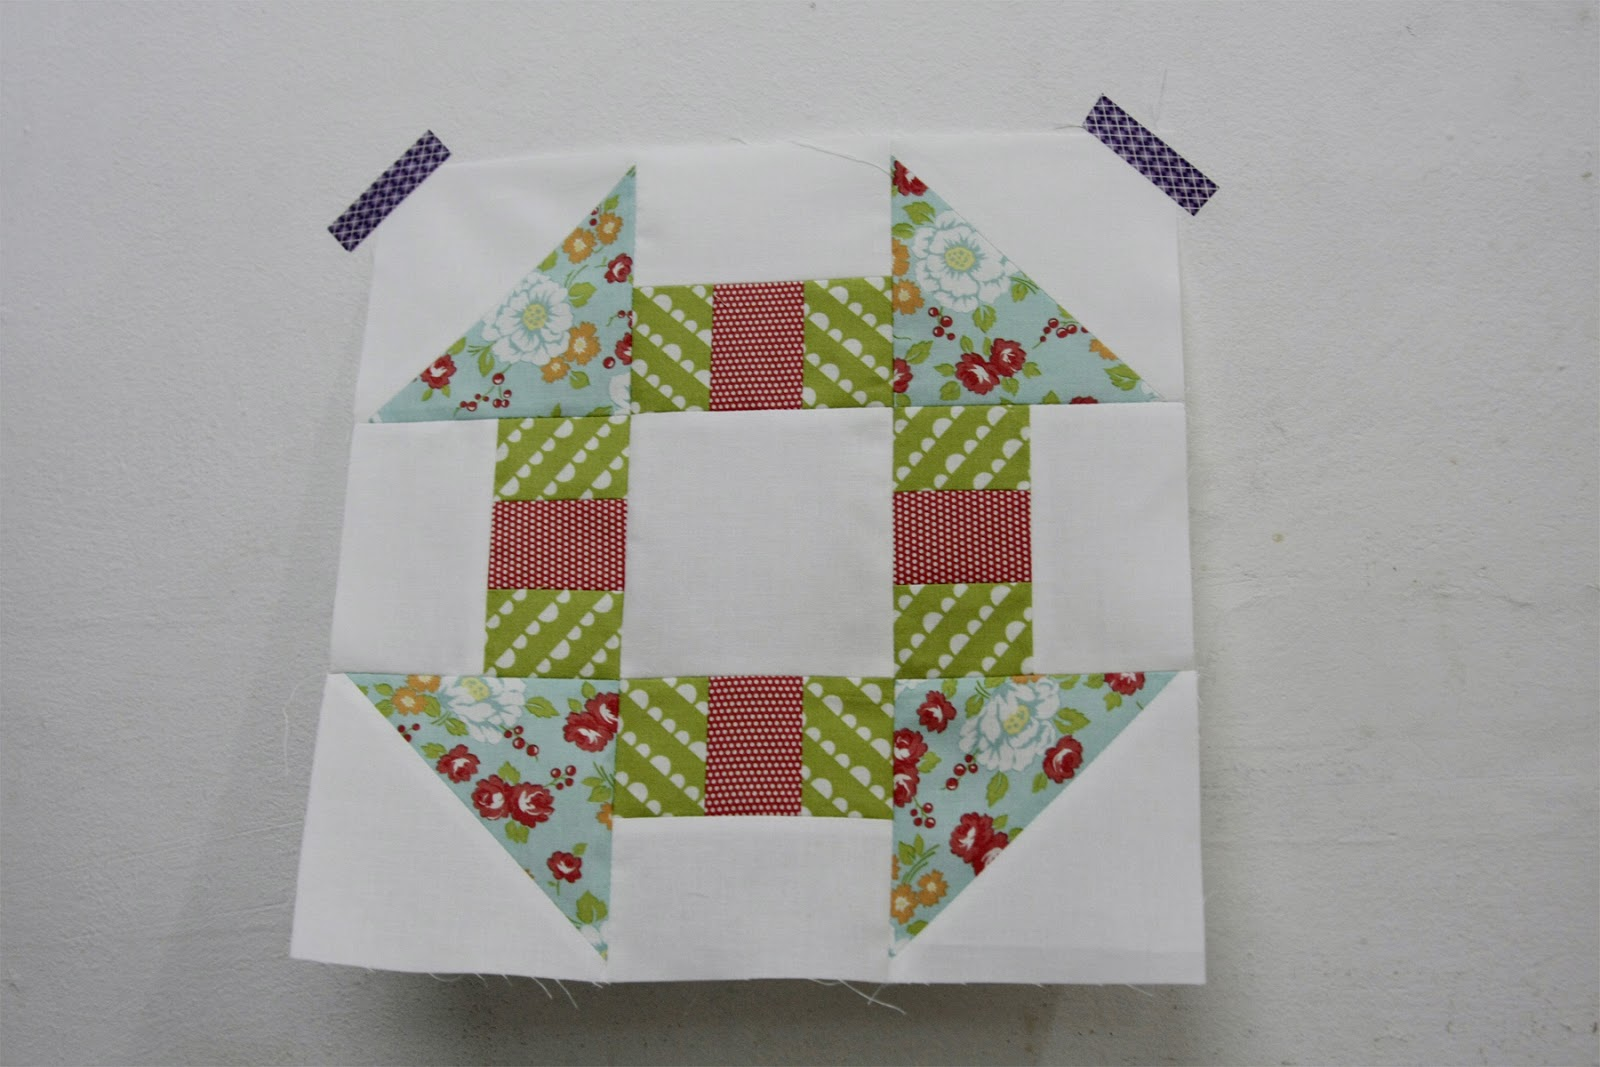 BOM Sew Lux June block, Happy Go Lucky, Camille Rosekelley, Simplify